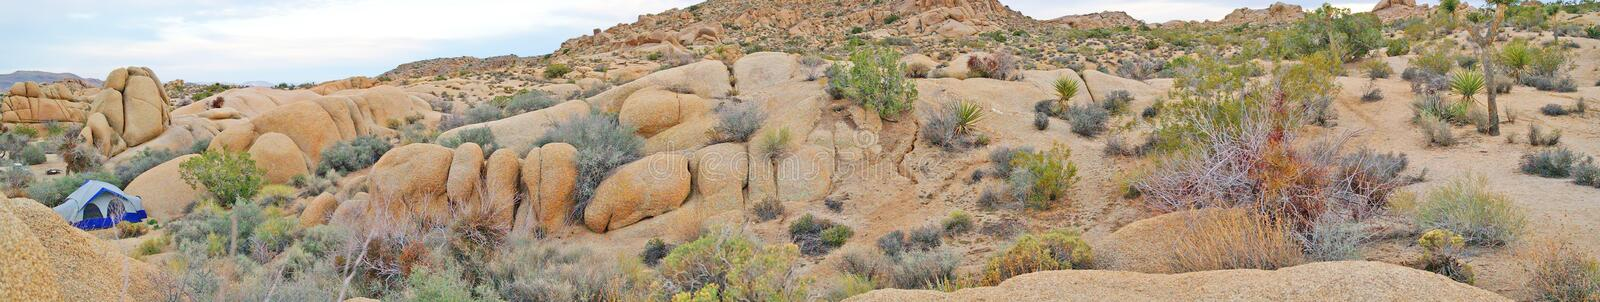 Camping de tente en Joshua Tree National Park - panorama photos libres de droits